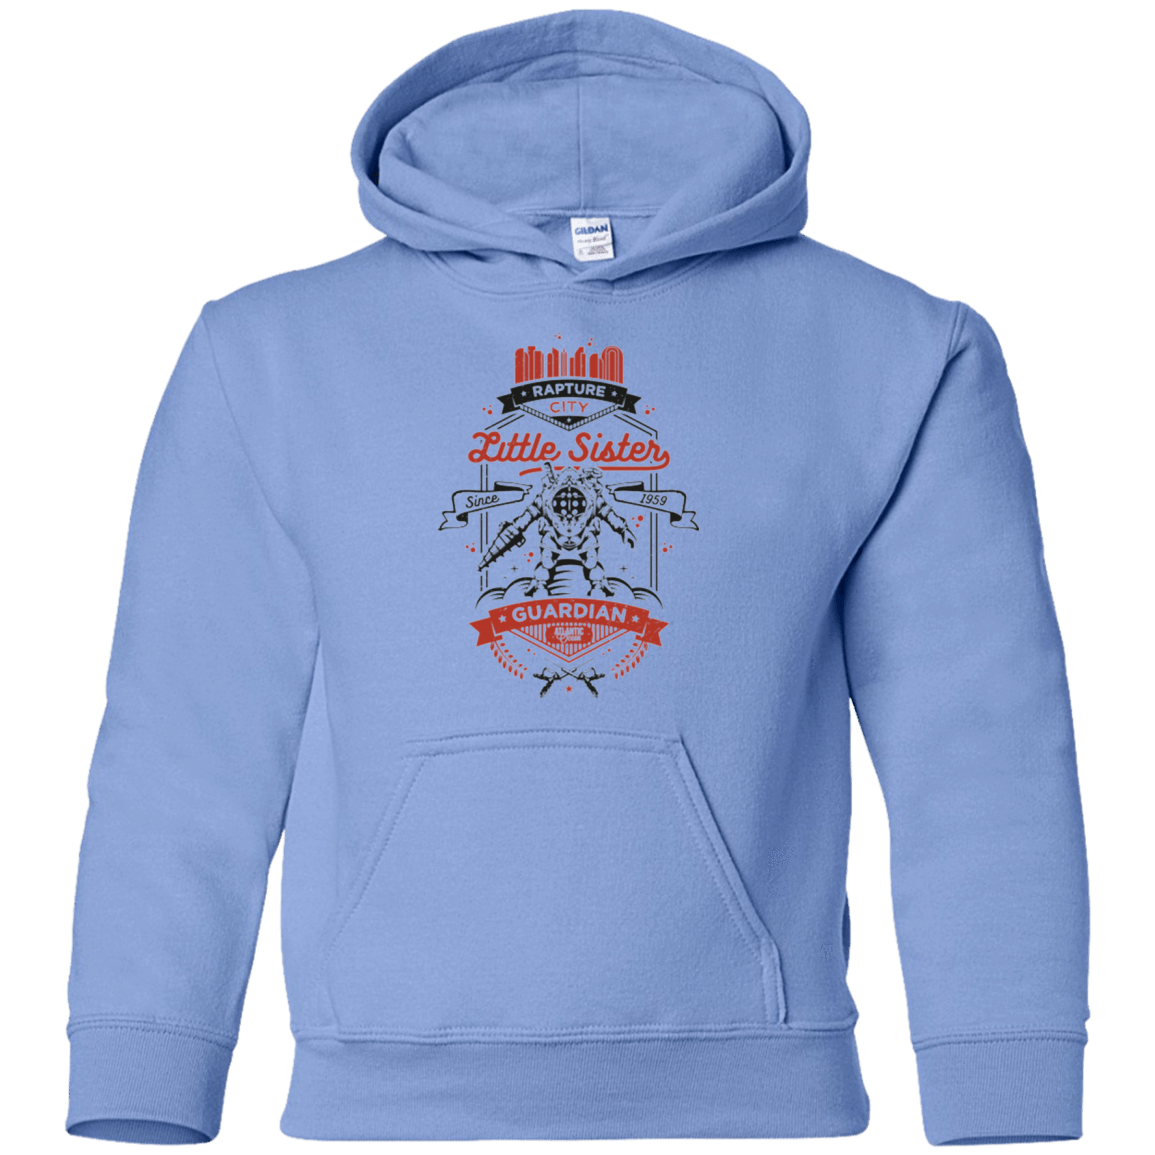 Sweatshirts Carolina Blue / YS Little Sister Protector V2 Youth Hoodie